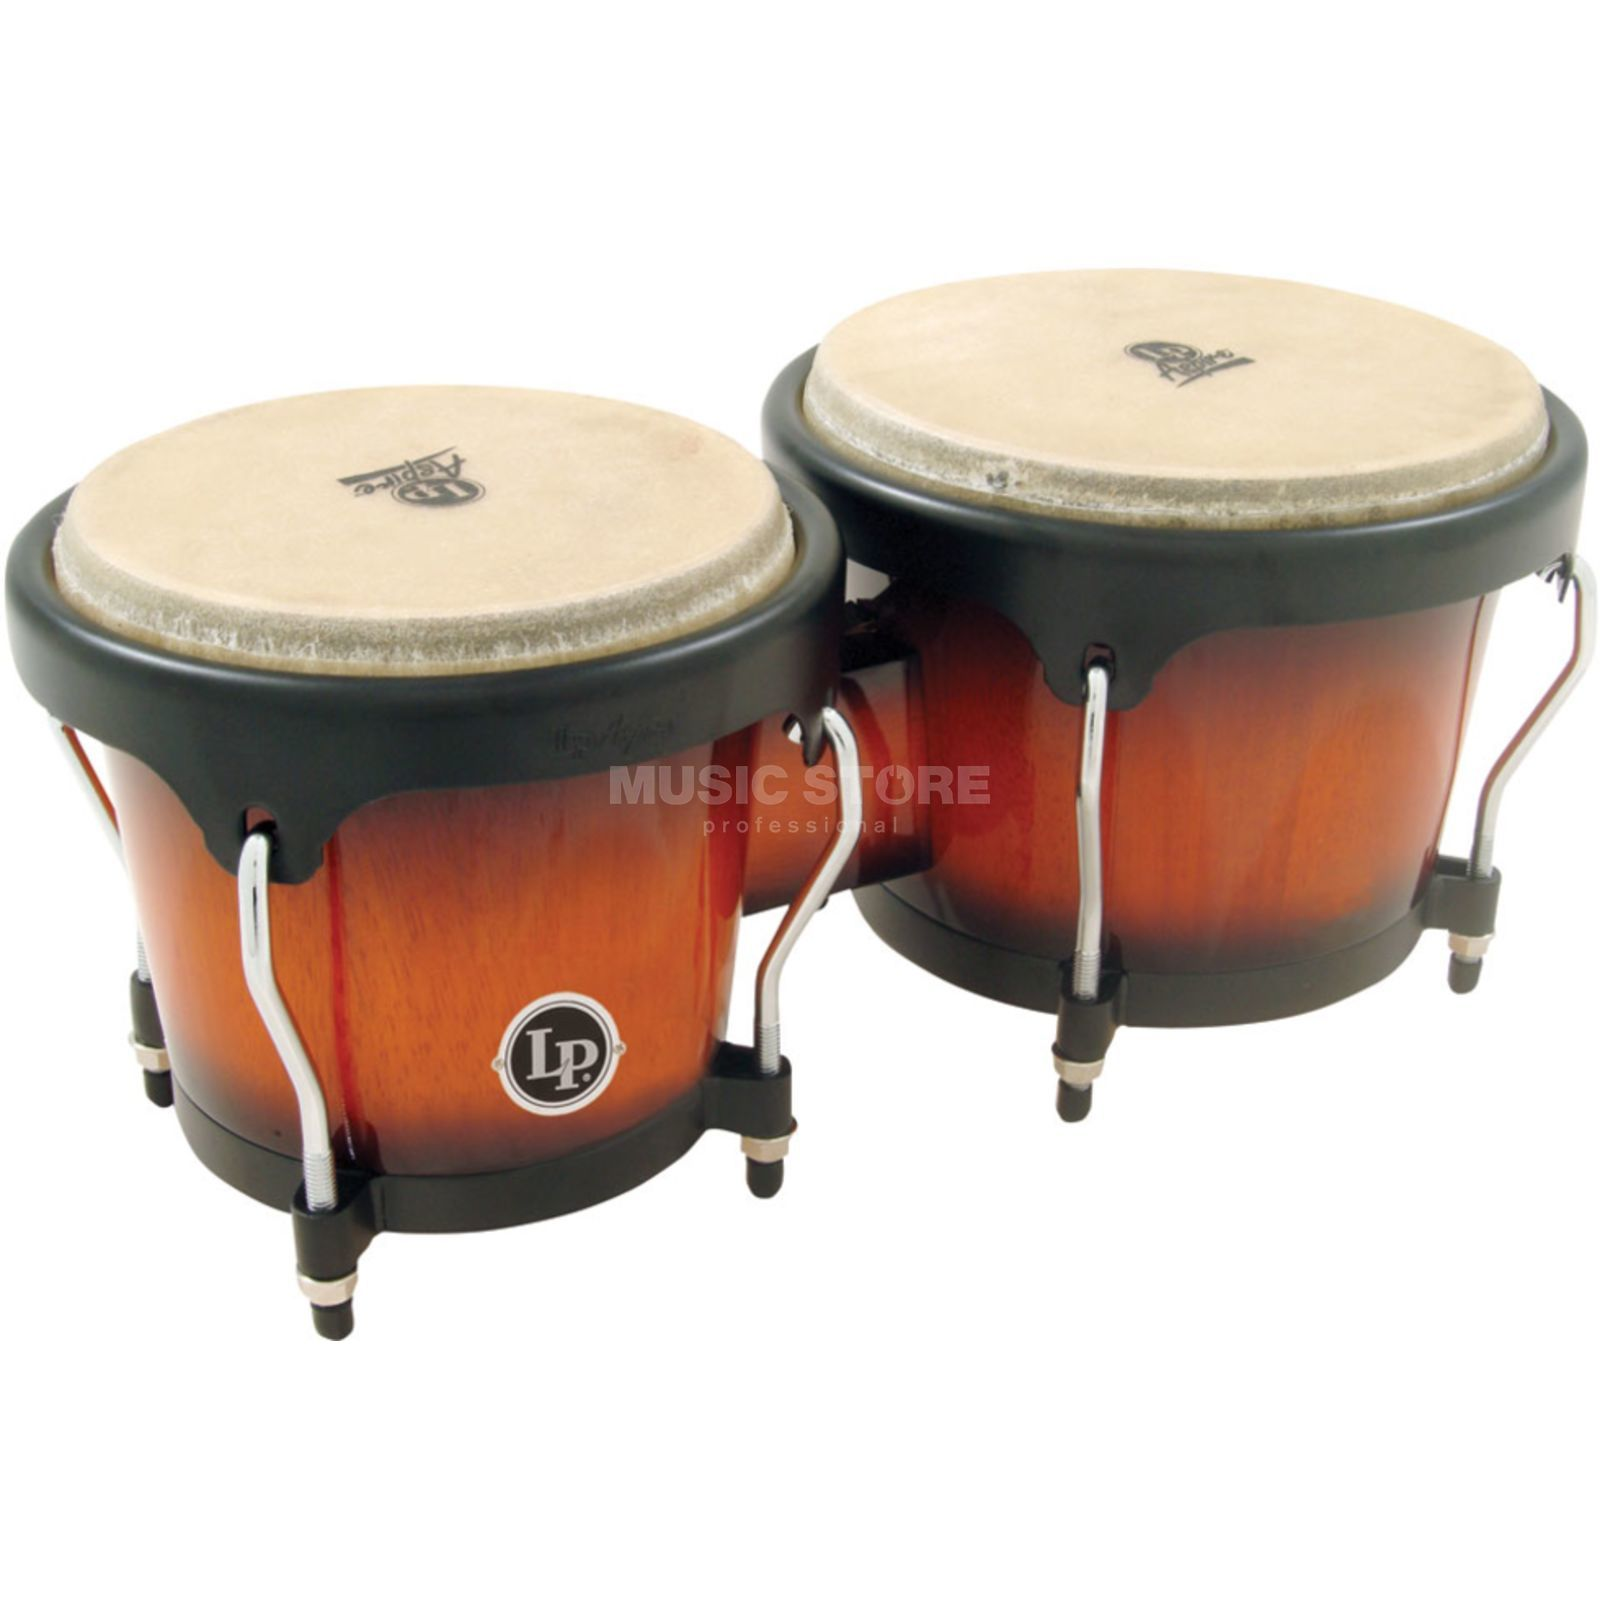 "Latin Percussion Aspire Bongos LPA601-VSB, 6 3/4"" + 8"", Sunburst #VSB Product Image"